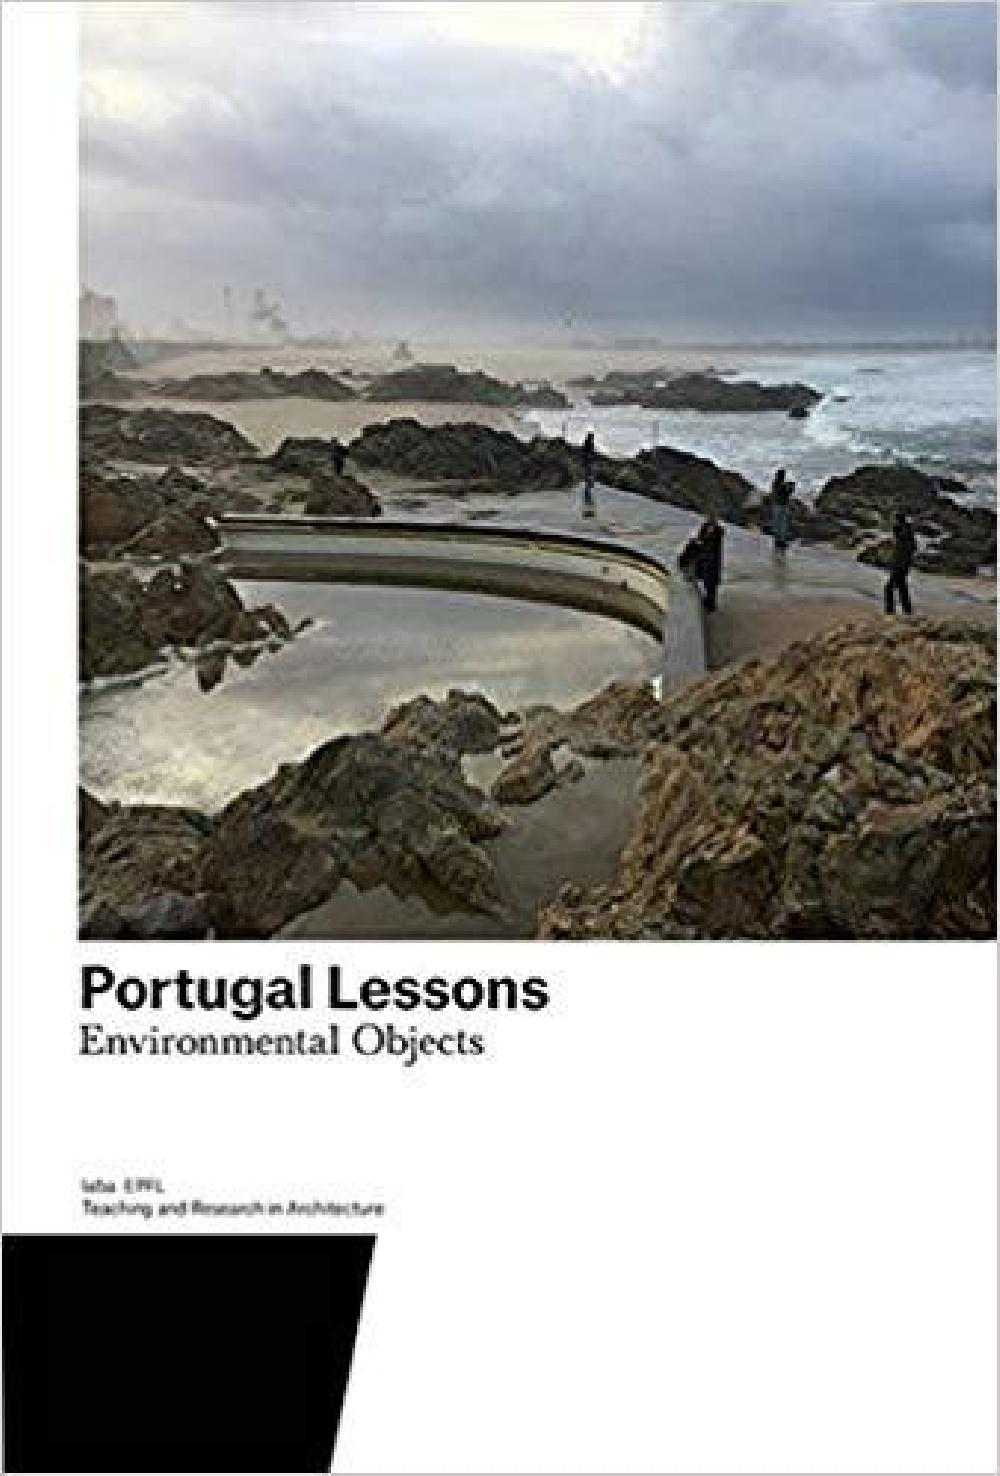 Portugal lessons Environmental Objects